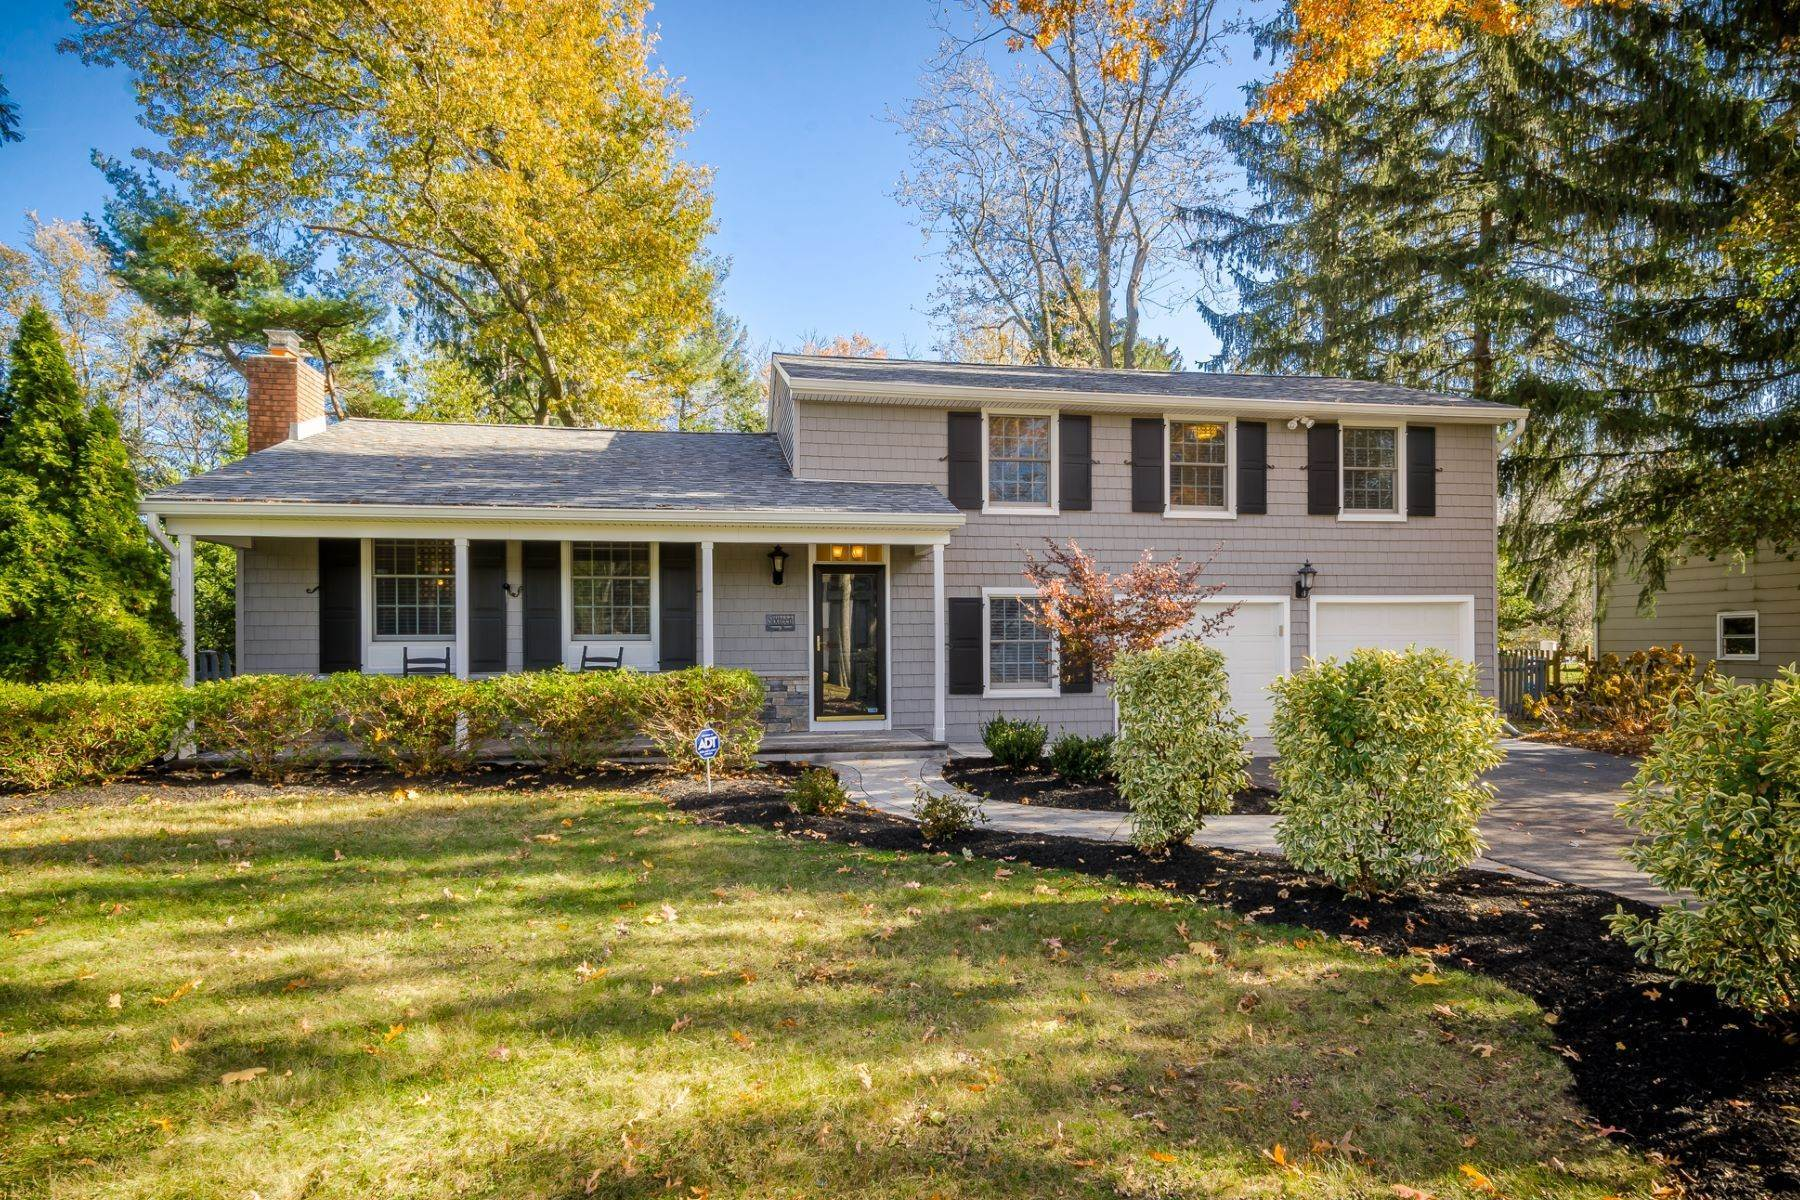 Single Family Homes for Sale at Completely Charming and Up-to-Date in Cranbury 16 Ryan Road Cranbury, New Jersey 08512 United States